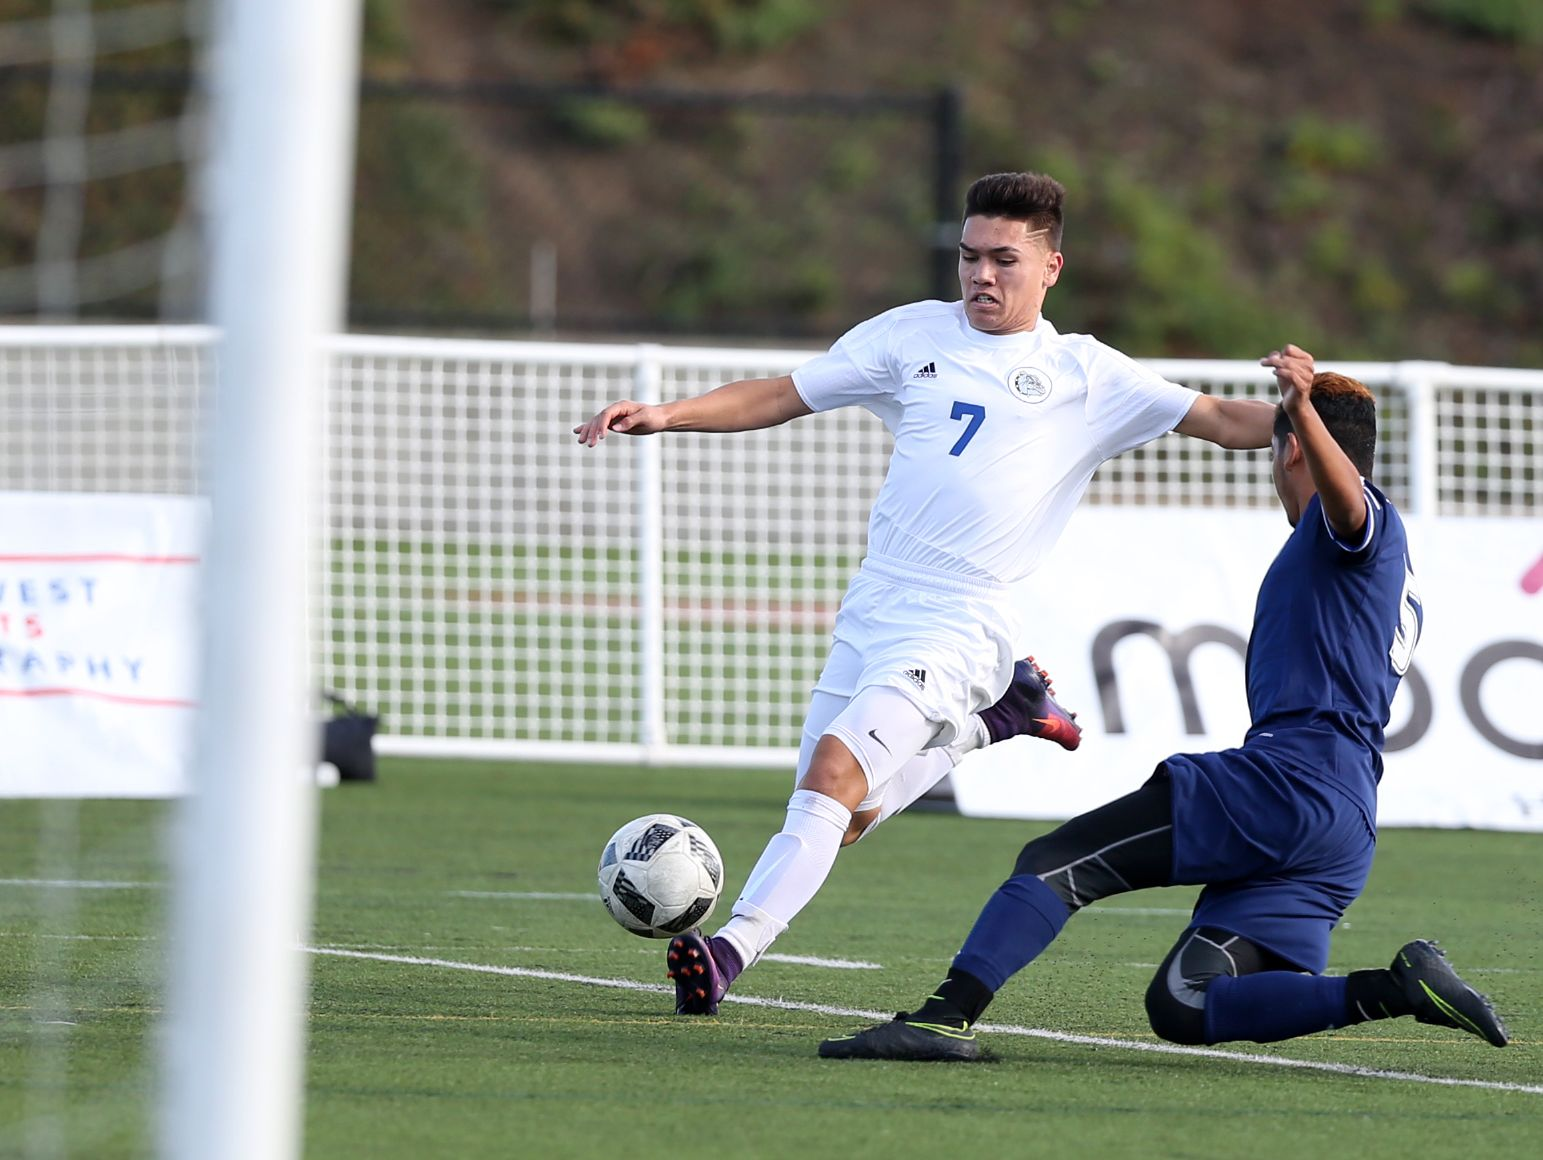 Wilsonville's Carlos Ulloa tries to block a kick by Woodburn's Conner Karsseboom as the Bulldogs defeat Wilsonville 1-0 to win OSAA Class 5A State Championship on Saturday, Nov. 12, 2016, at Hillsboro Stadium.